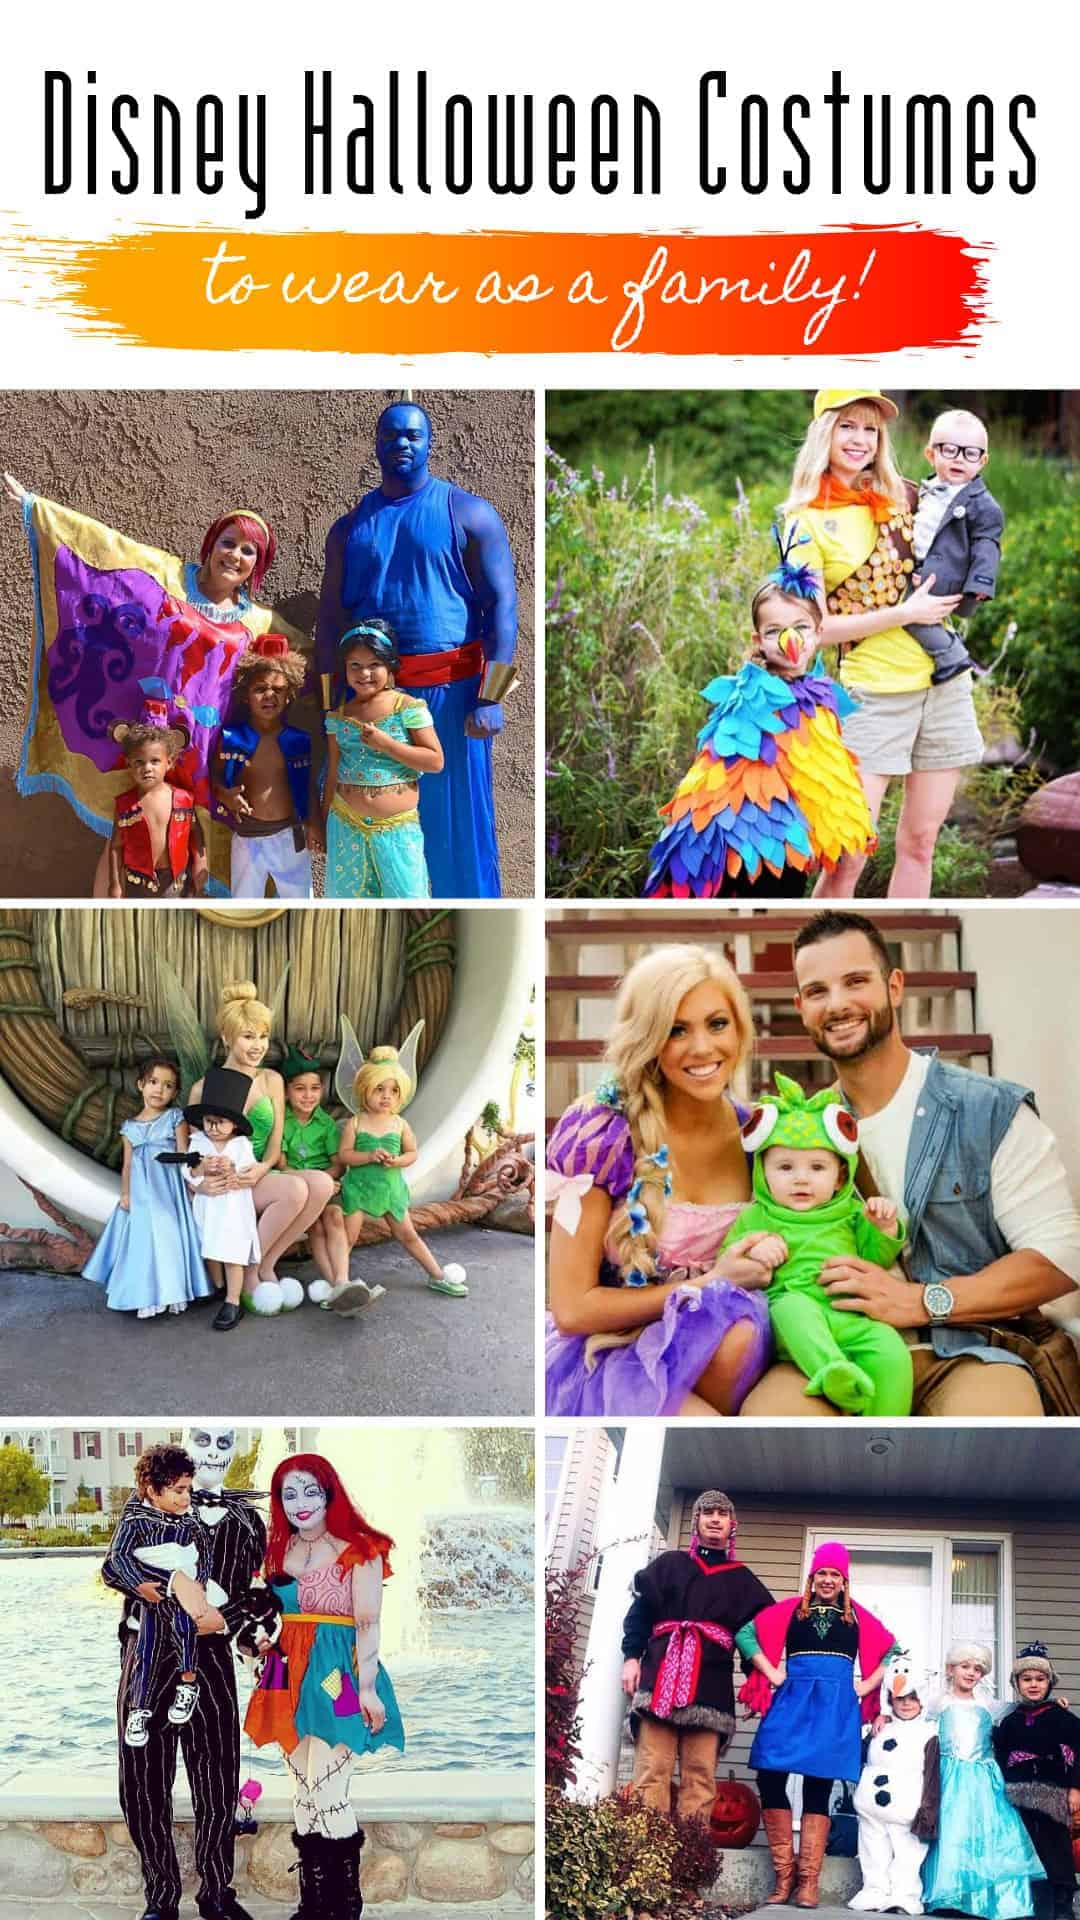 These Disney Halloween costumes are genius and perfect ideas for your family! #halloween #mnsshp